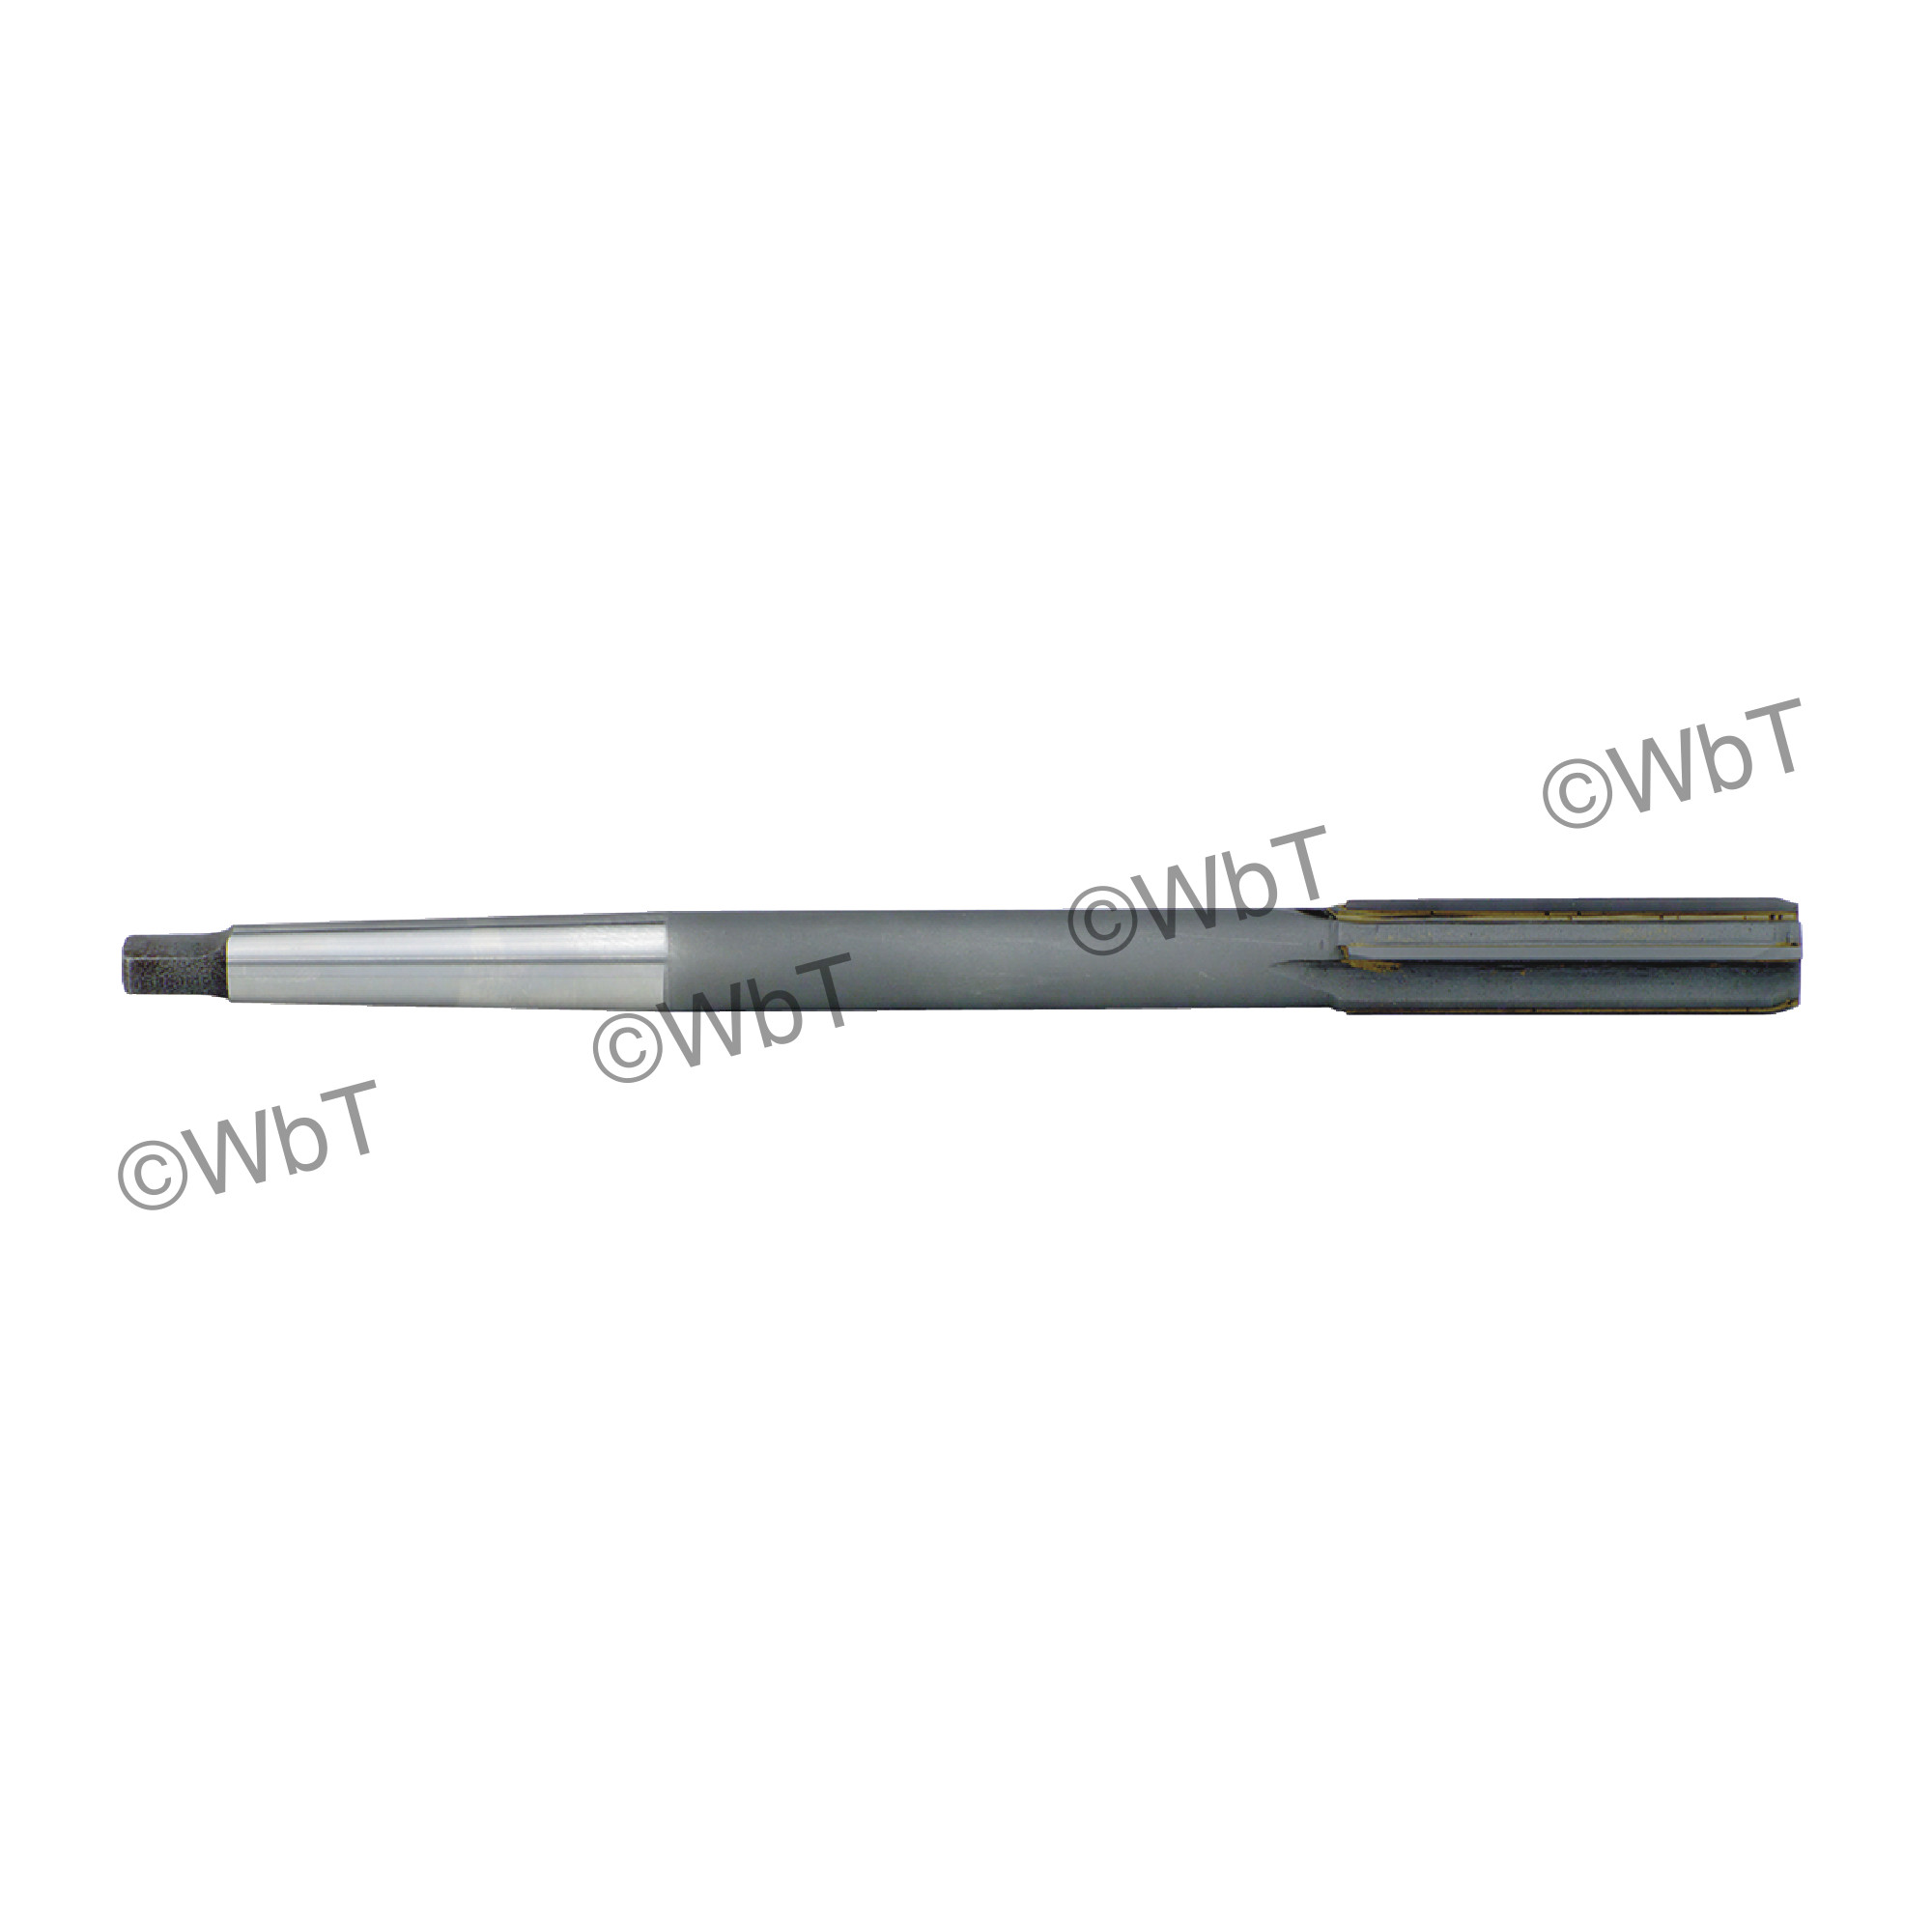 Carbide Tipped Morse Taper Chucking Reamers